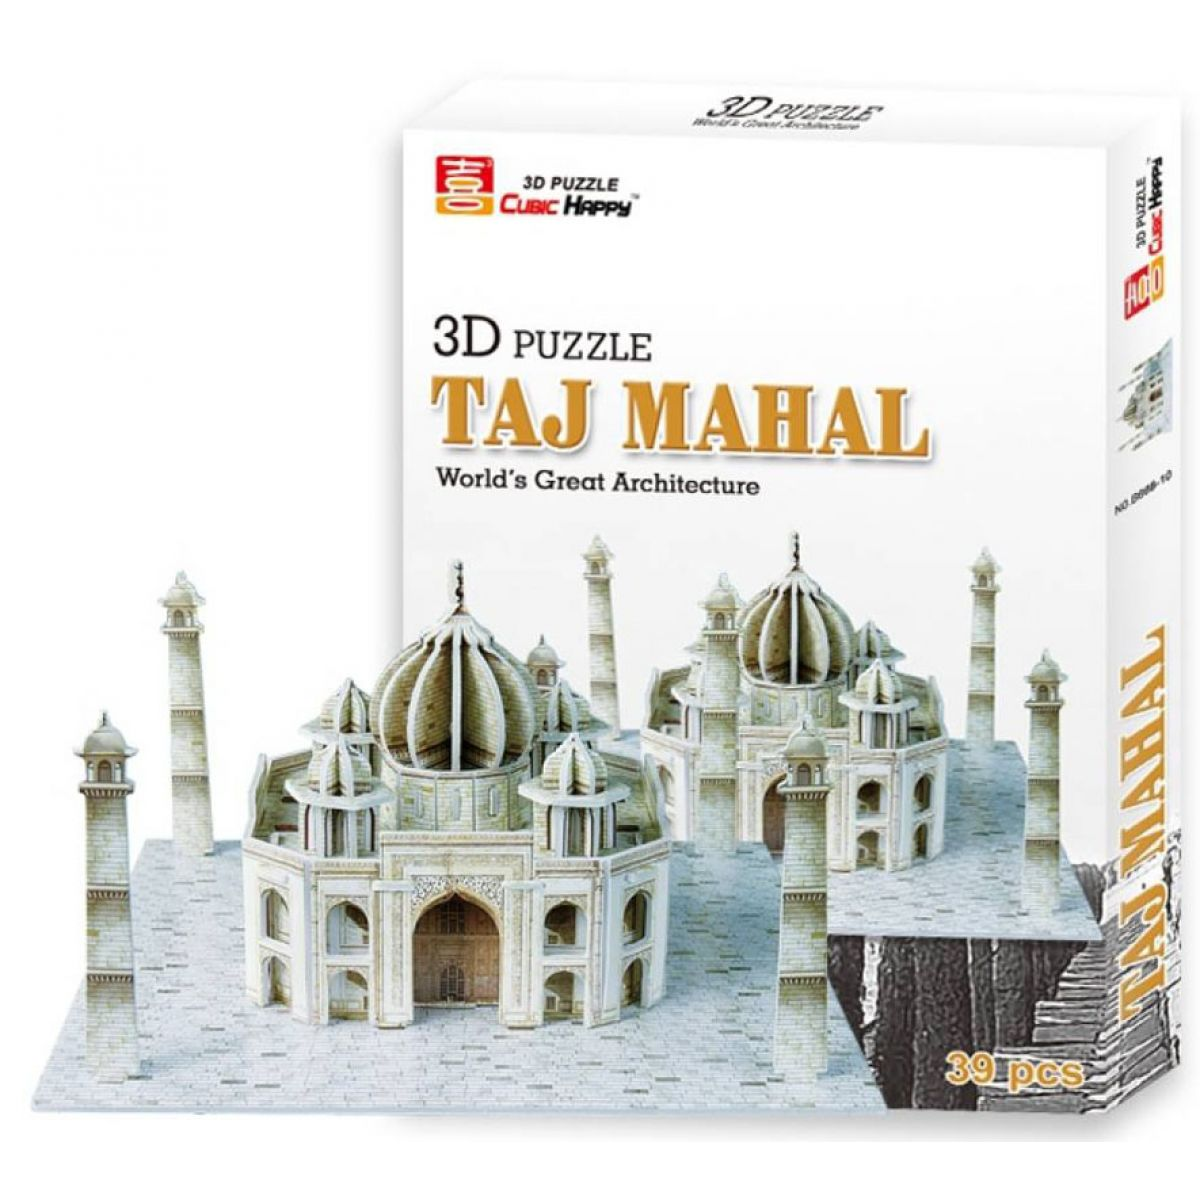 3d puzzle taj mahal aus styropor 39 teile. Black Bedroom Furniture Sets. Home Design Ideas